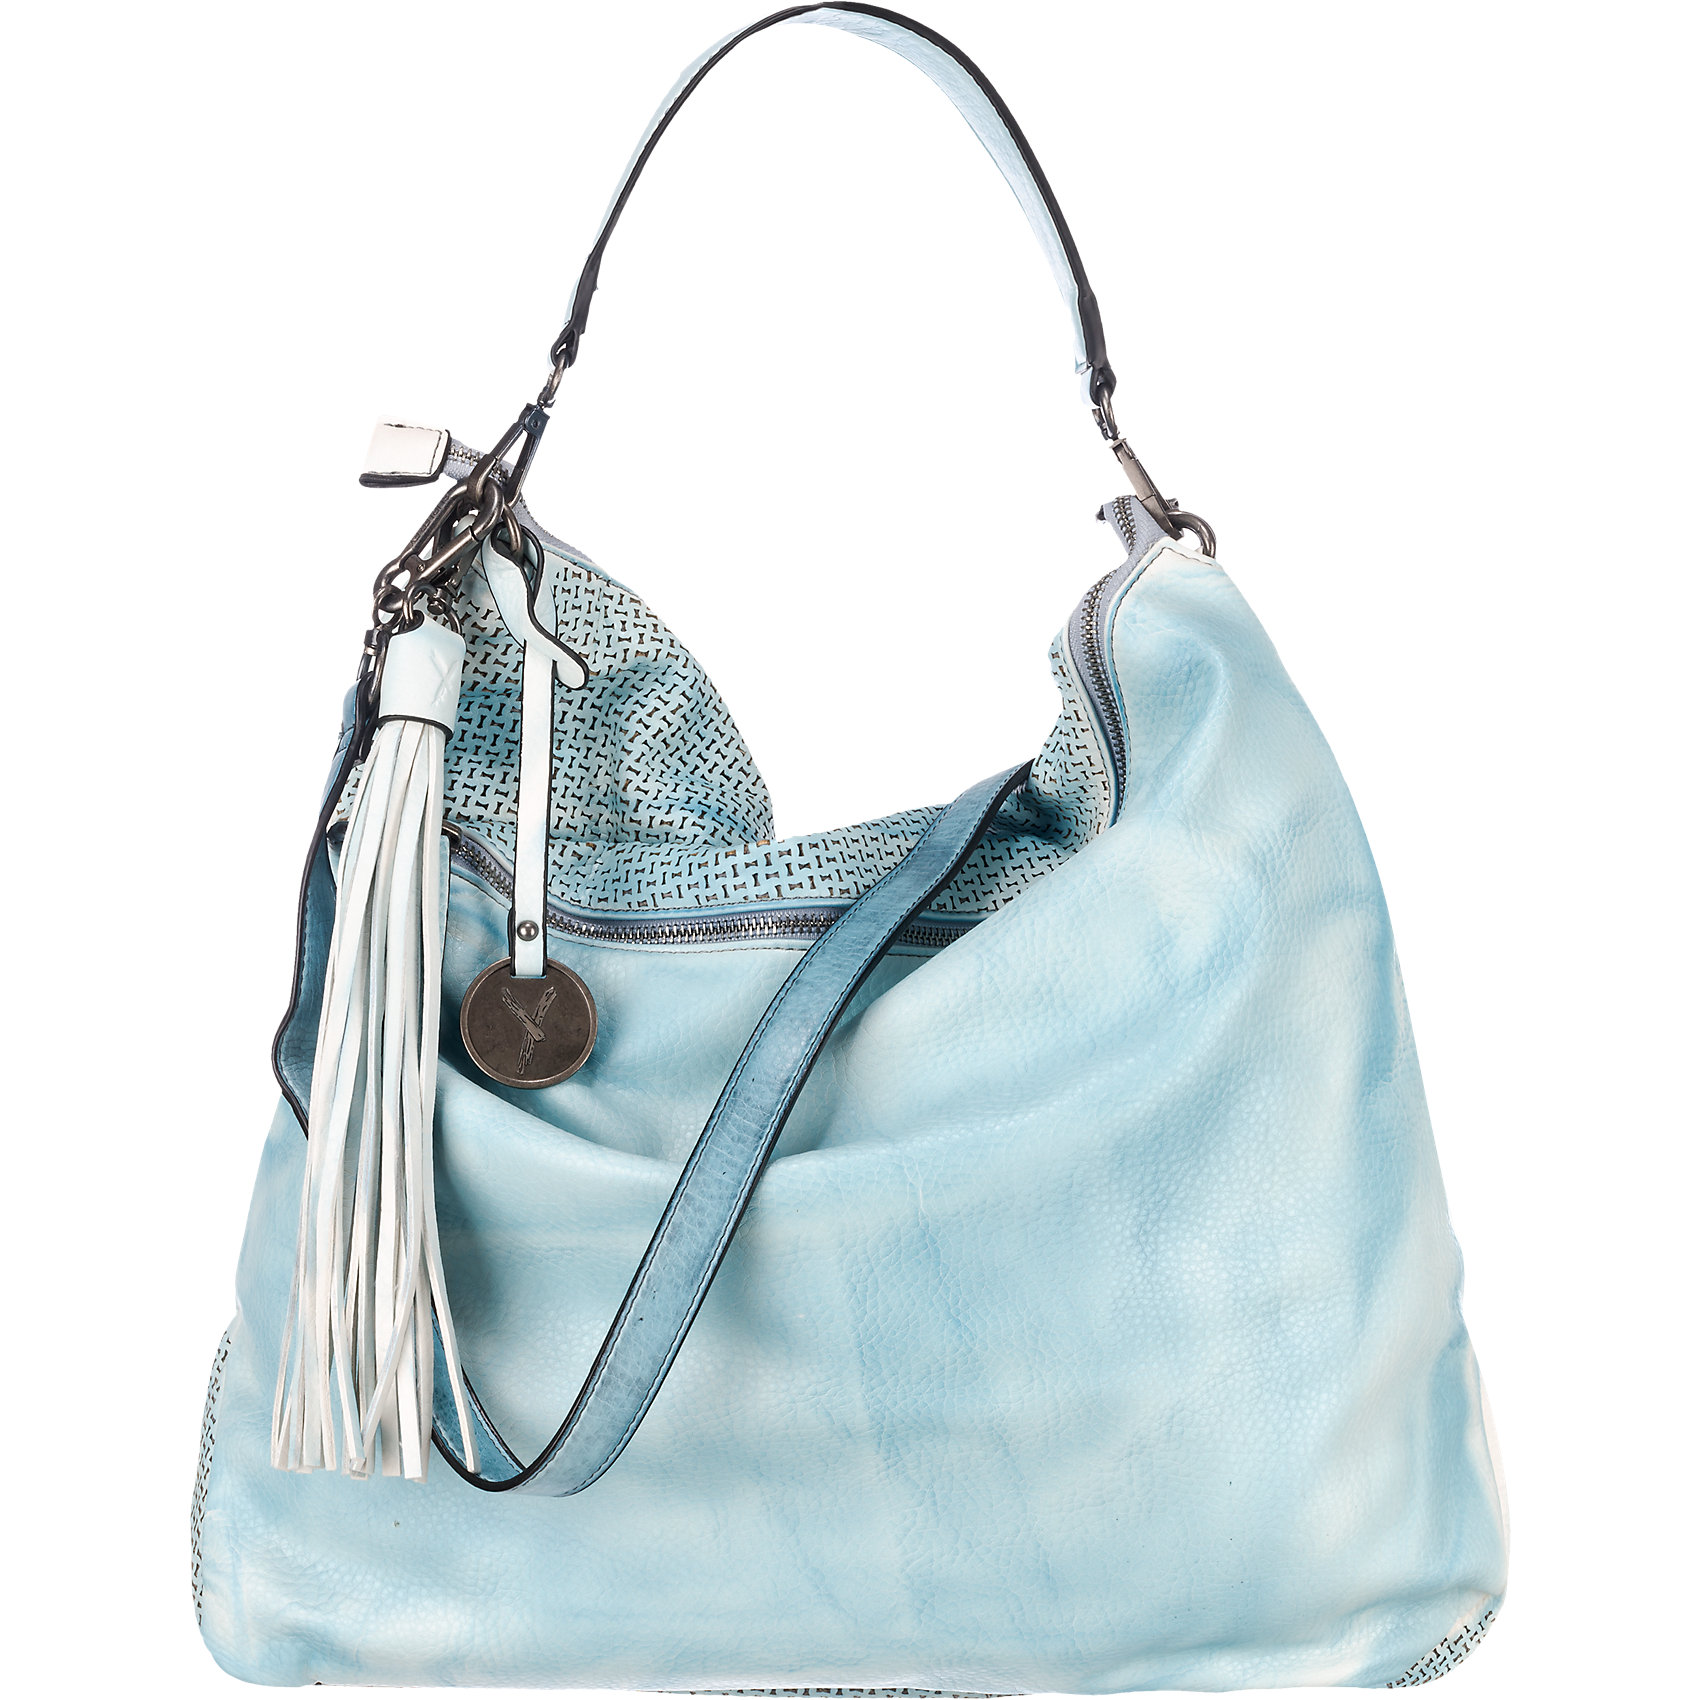 Hobo Bag Roxy blue Suri Frey